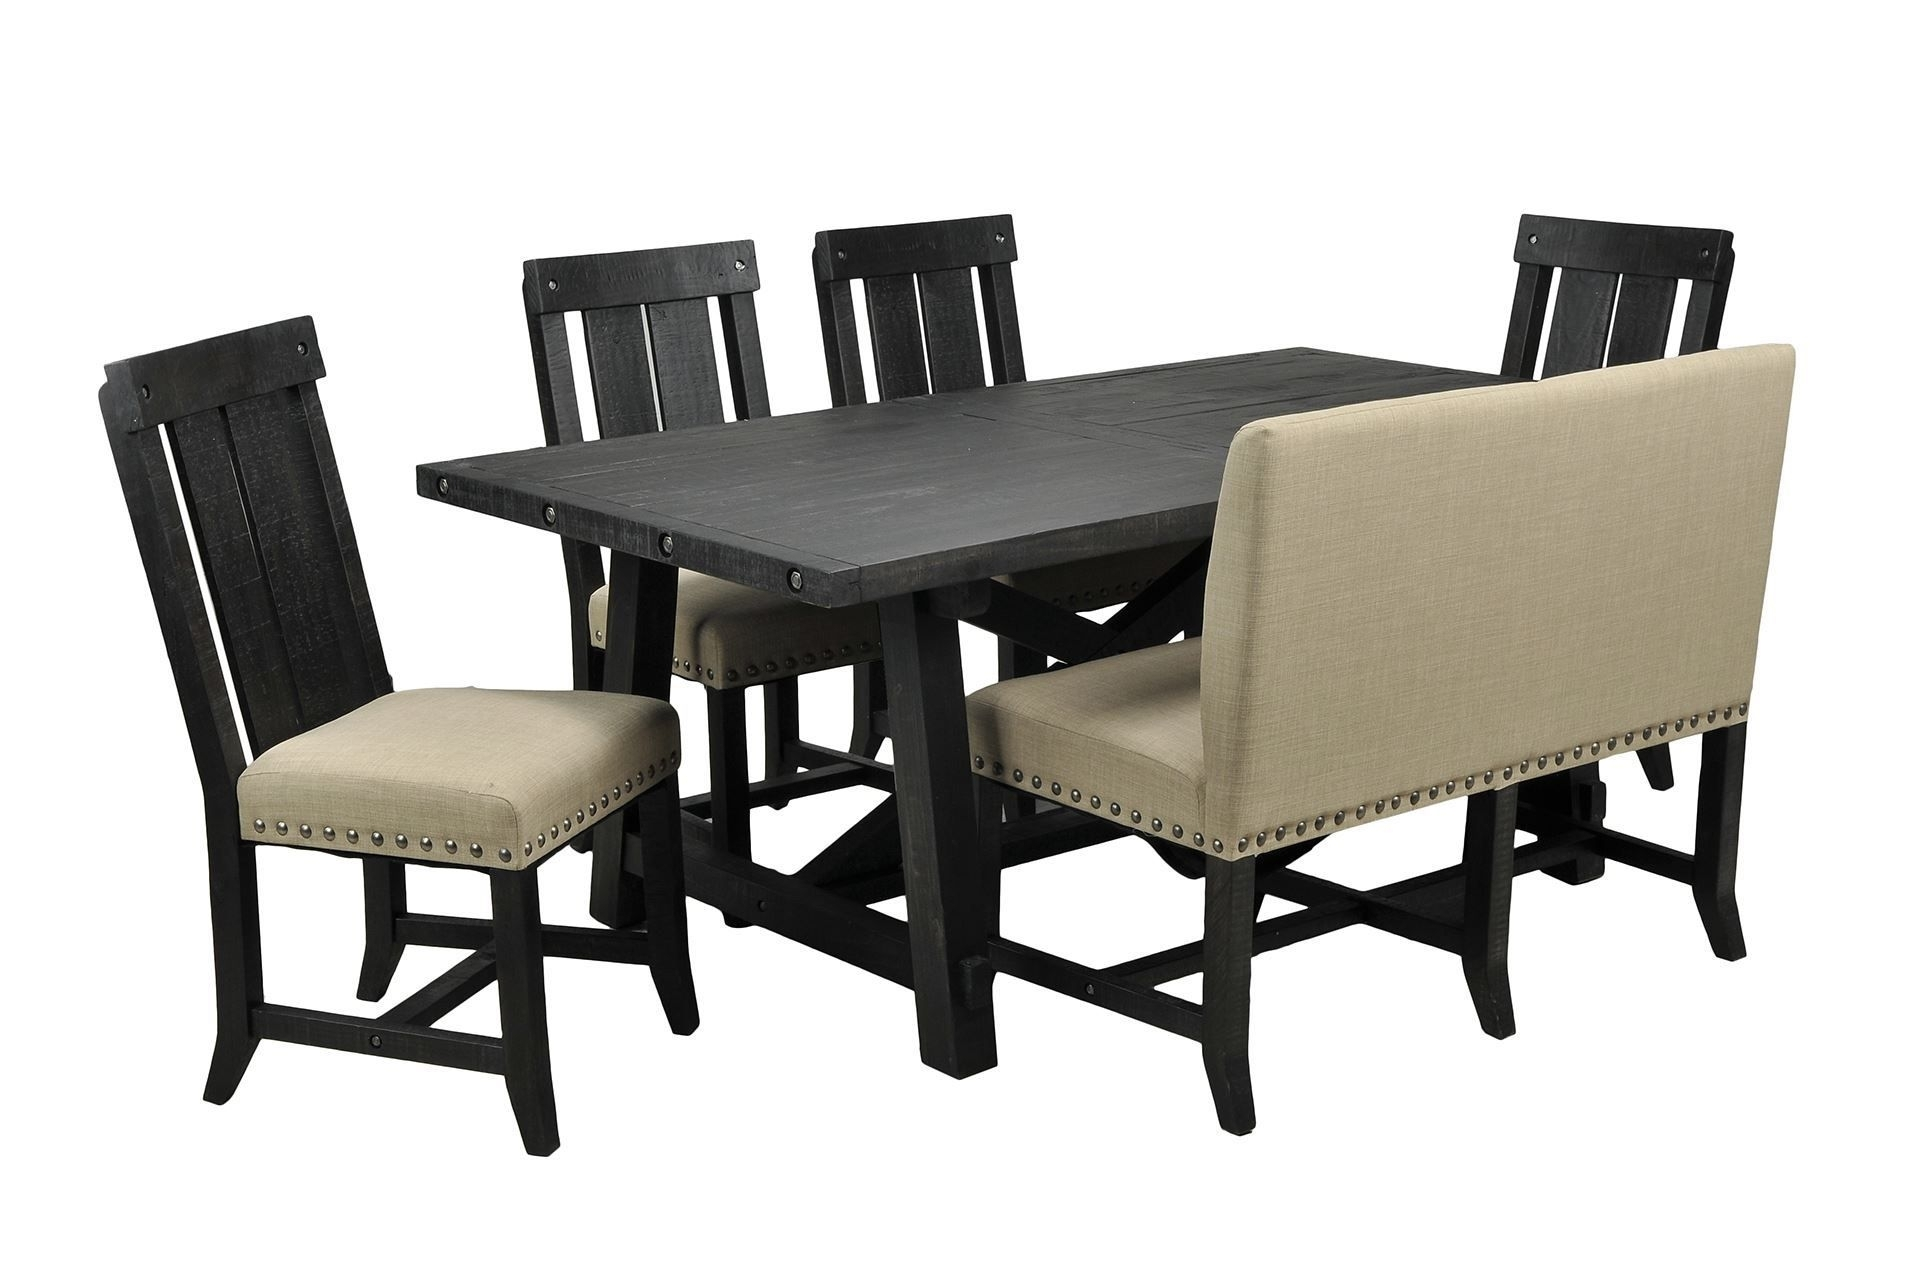 Jaxon 6 Piece Rectangle Dining Set W/bench & Wood Chairs, Café Within Most Recent Jaxon 6 Piece Rectangle Dining Sets With Bench & Uph Chairs (Image 12 of 20)